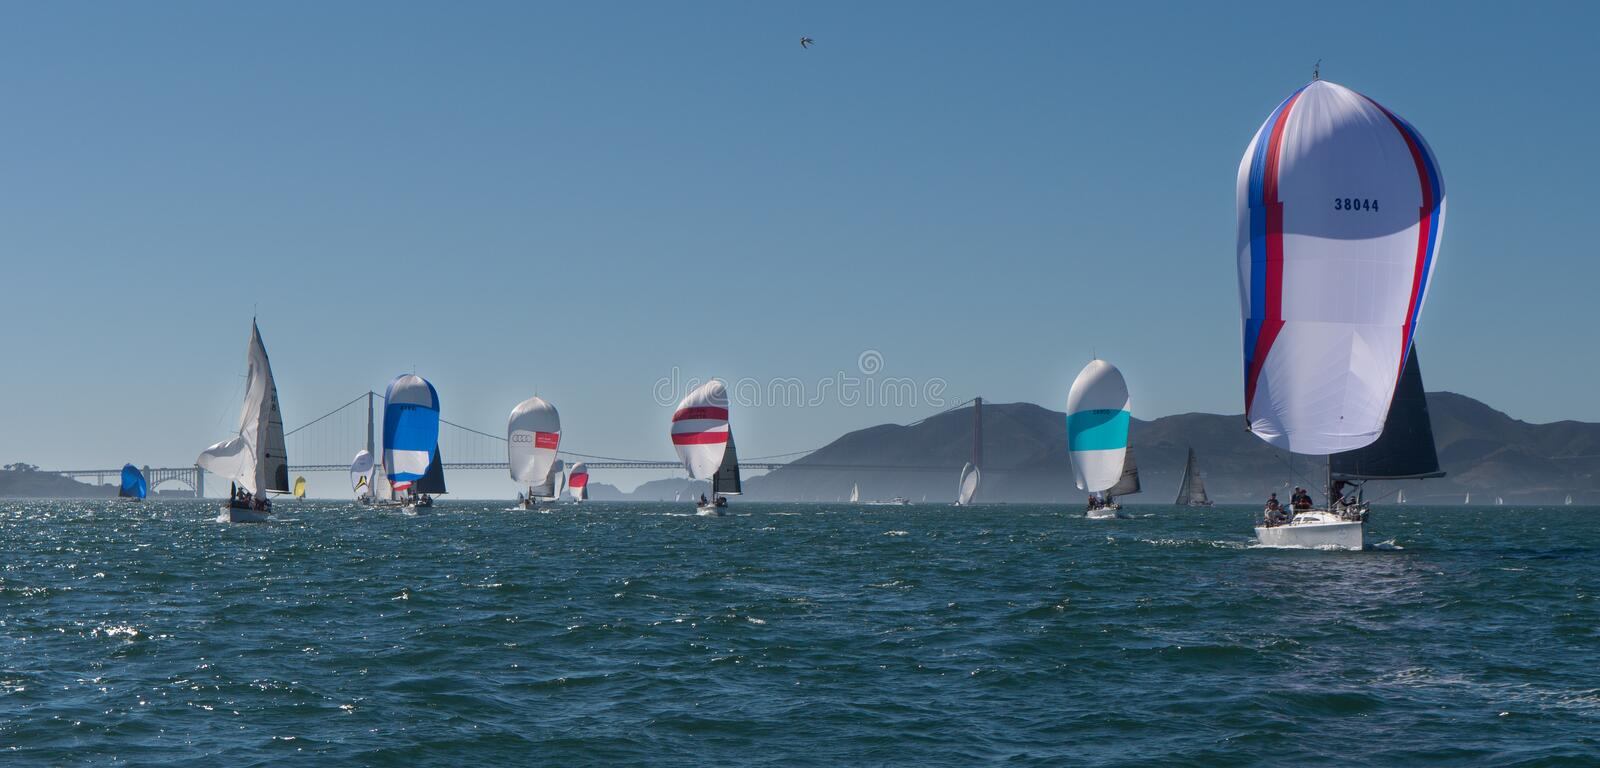 Sailboats with spinnakers at Rolex Cup. Sailboats flying spinnakers competing at Rolex Cup sailing event in San Francisco September 2015. Golden Gate bridge in royalty free stock photo